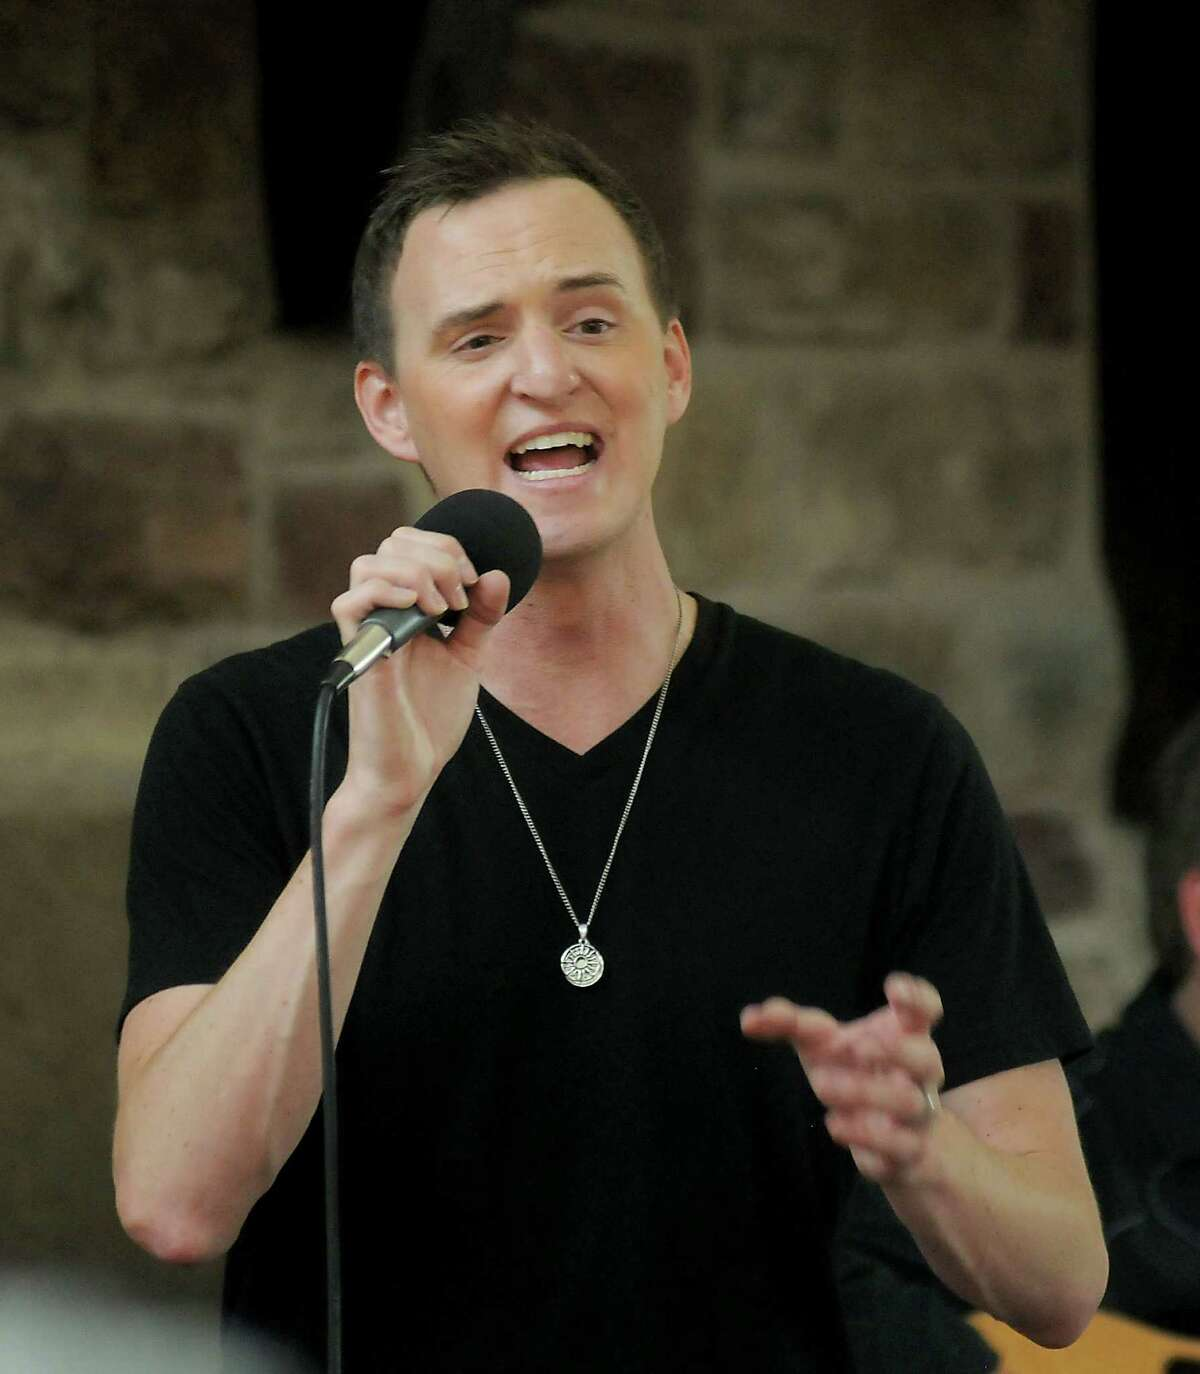 Country artist Curtis Braly performs a free show at Memorial City Mall Saturday July 25, 2015. Brady will also perform a show benefitting the Lone Survivor Foundation on Aug, 8th at Bayou Music Center.(Dave Rossman photo)